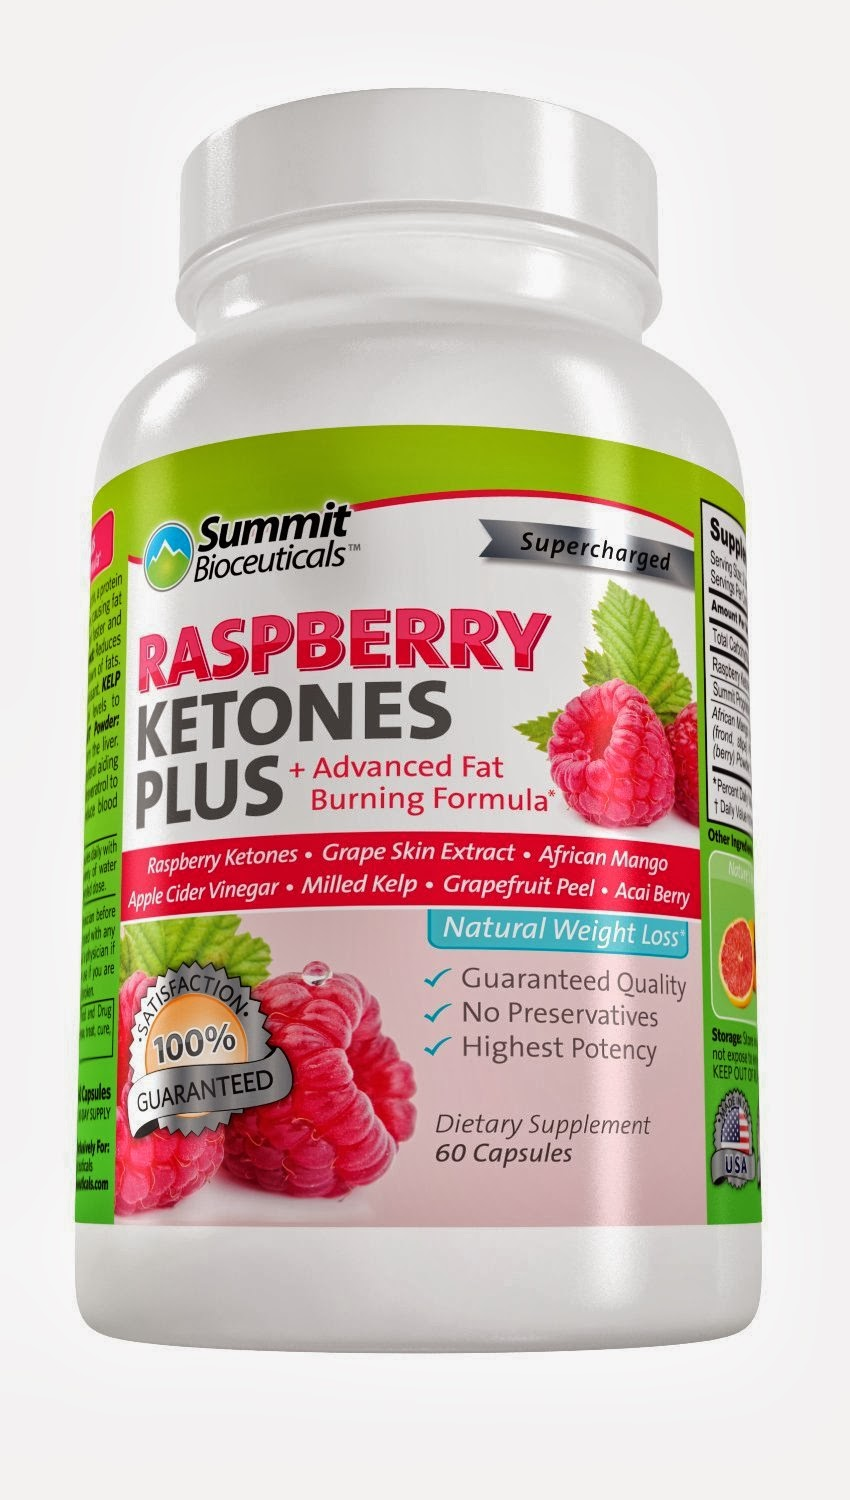 Best Healthy And Weight Loss Products: Raspberry Ketones